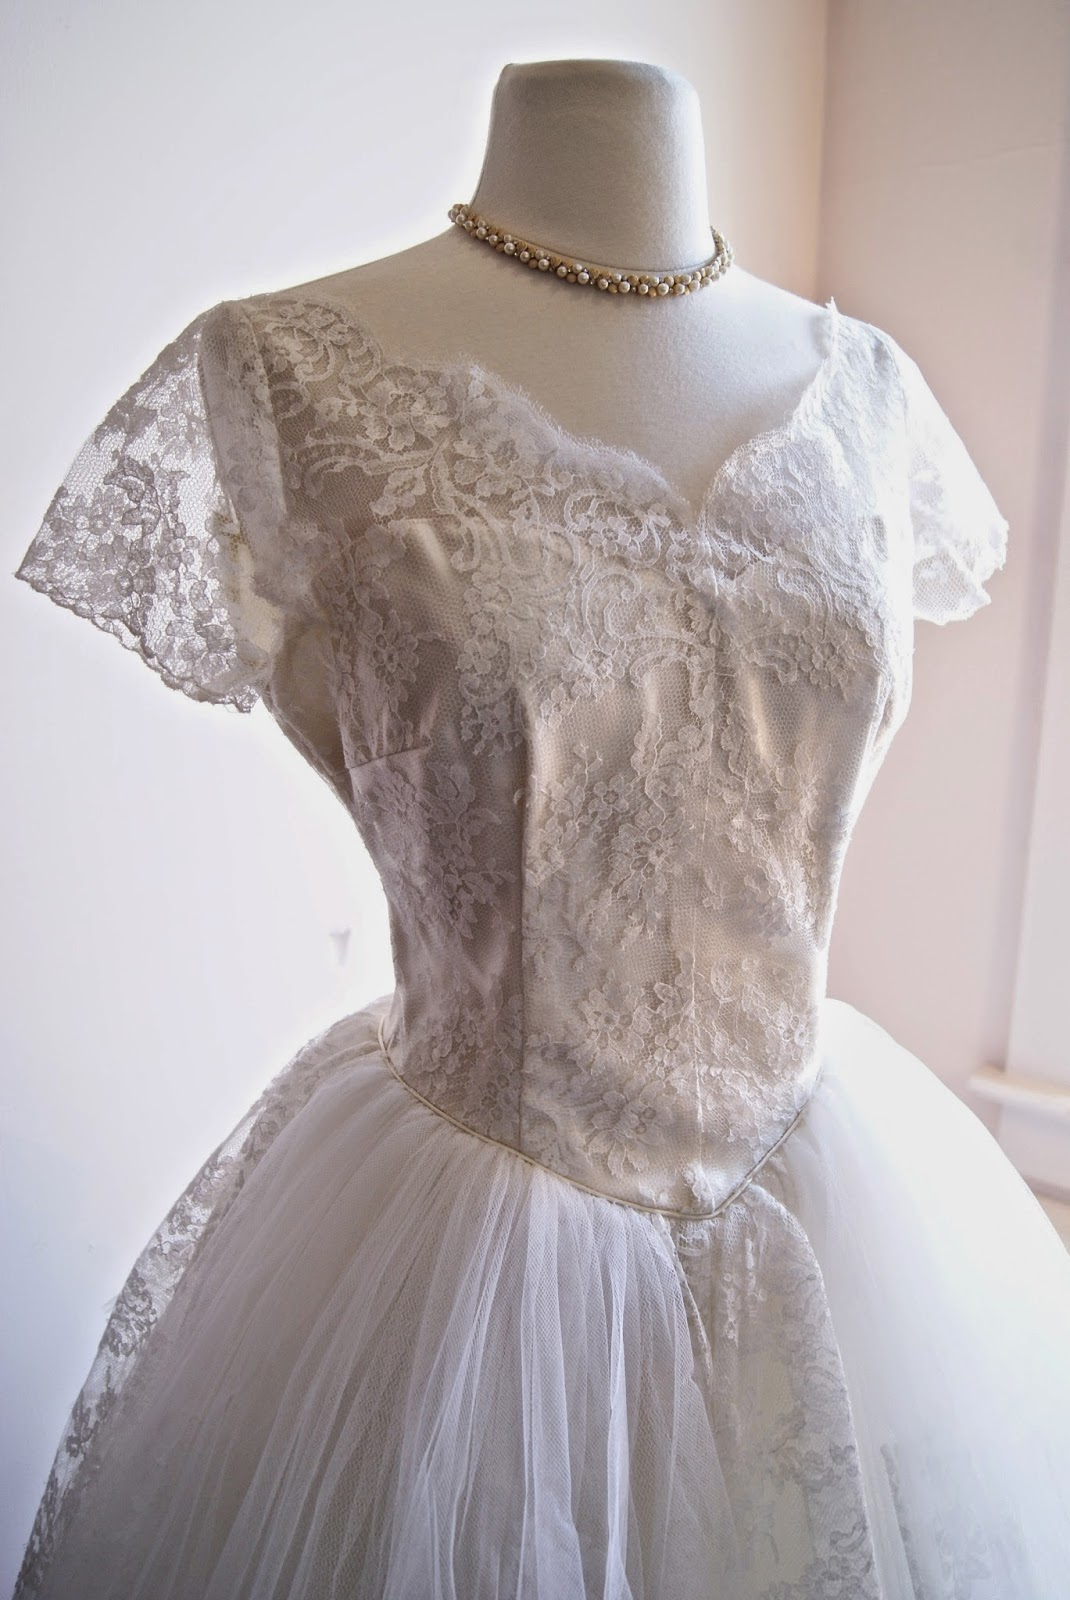 1950s Chantilly Lace Tea Length Wedding Dress Available In The Bridal Salon And Our Etsy Store